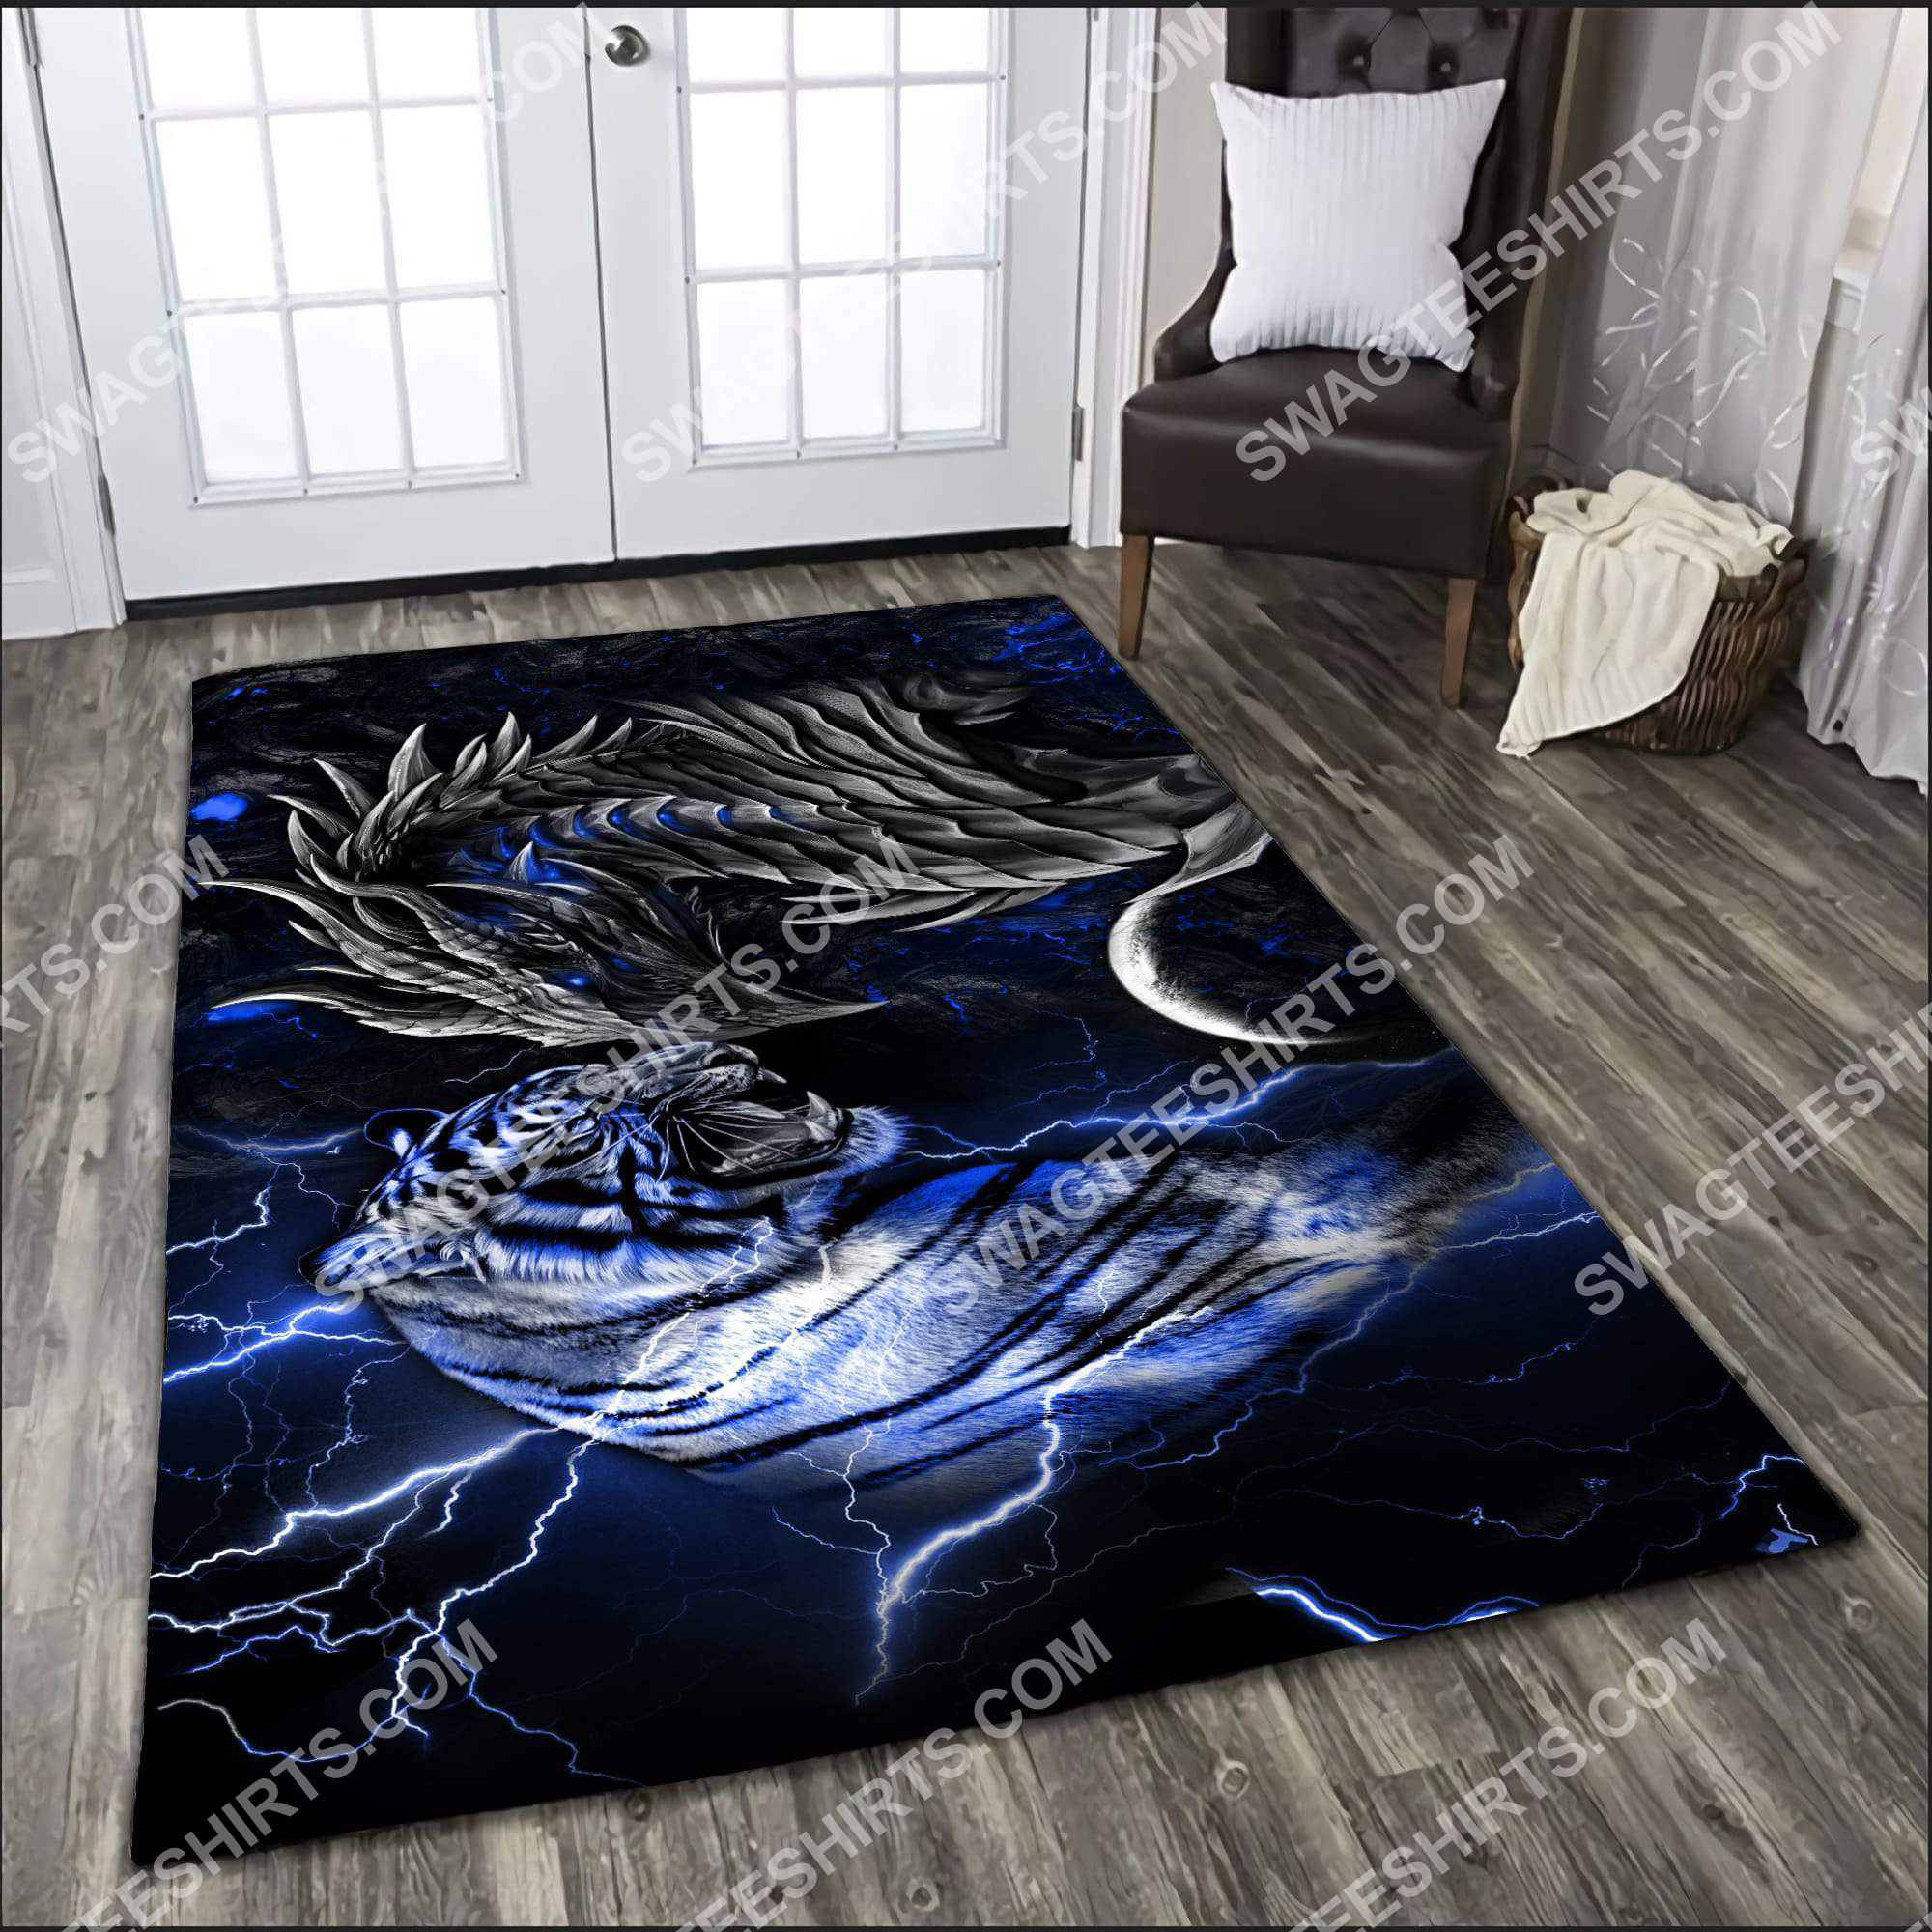 thunder dragon and tiger all over printed rug 3(1) - Copy